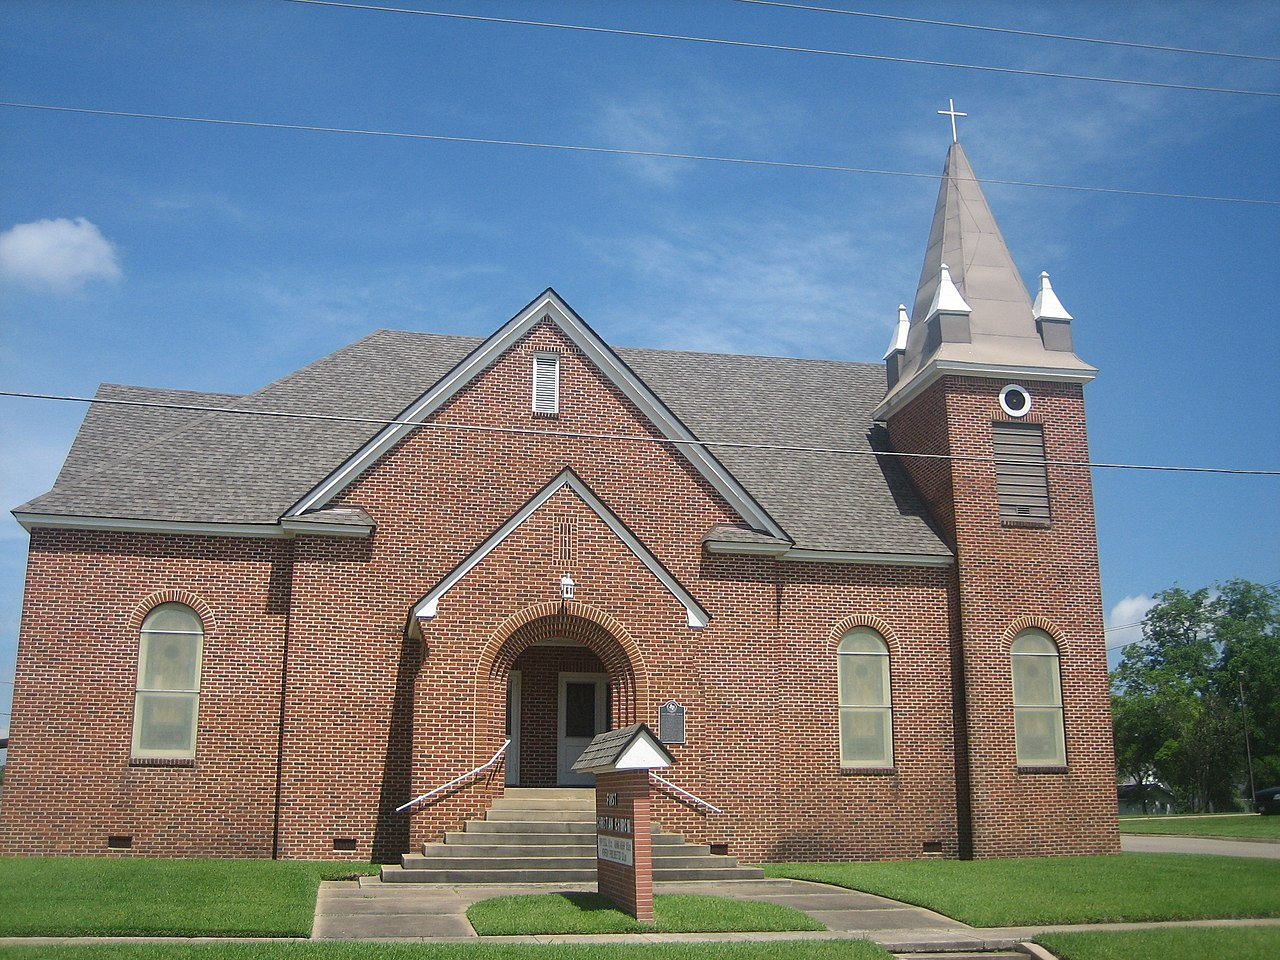 Christ Church Picture: File:First Christian Church Of Center, TX IMG 0953.JPG